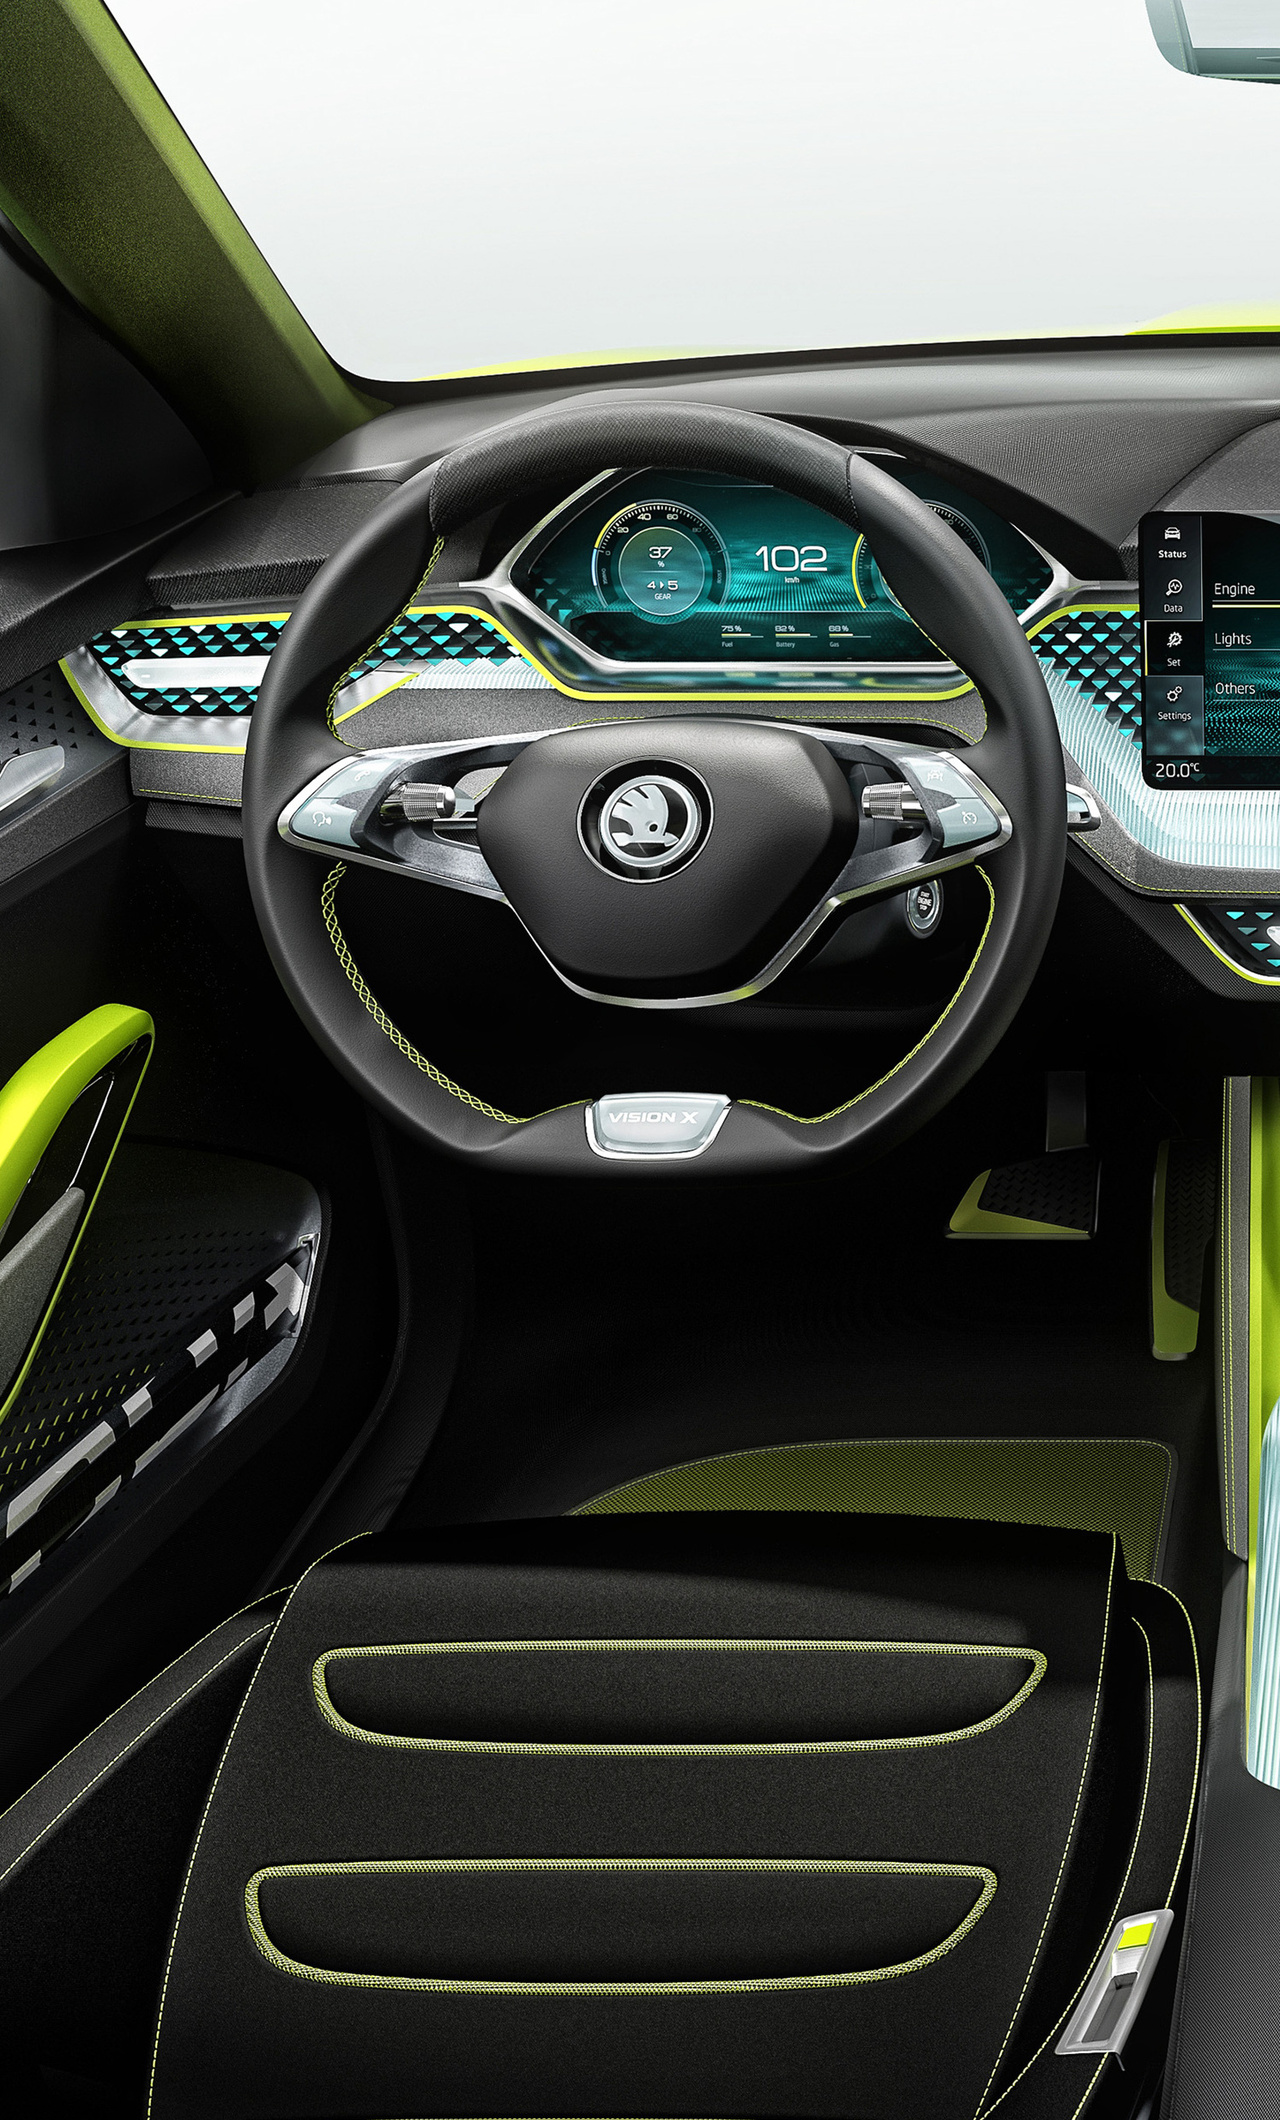 1280x2120 skoda vision x 2018 interior iphone 6 hd 4k for Interior iphone x